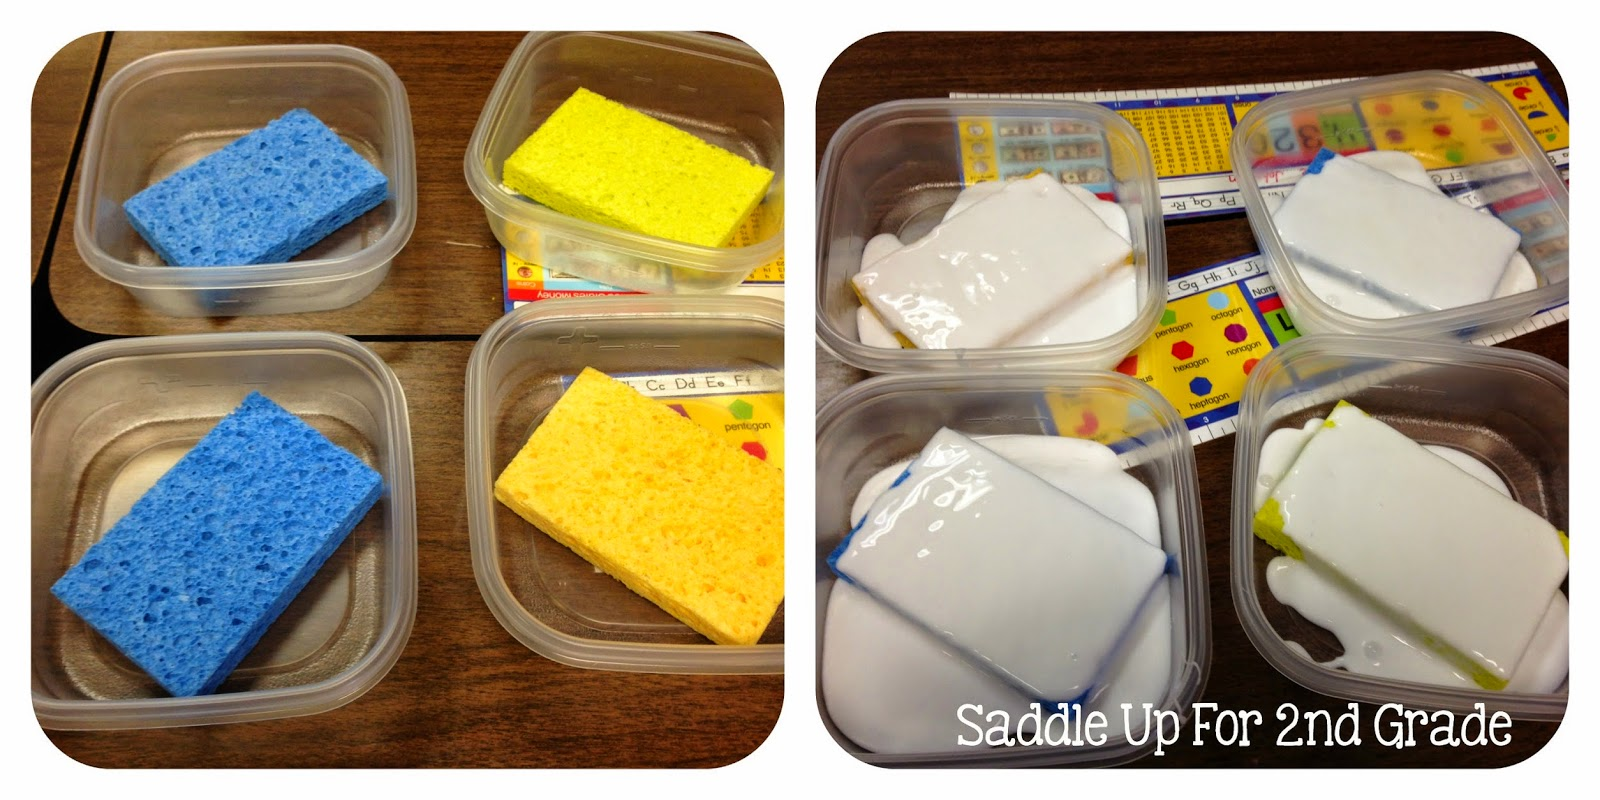 Glue Sponges by Saddle Up For 2nd Grade